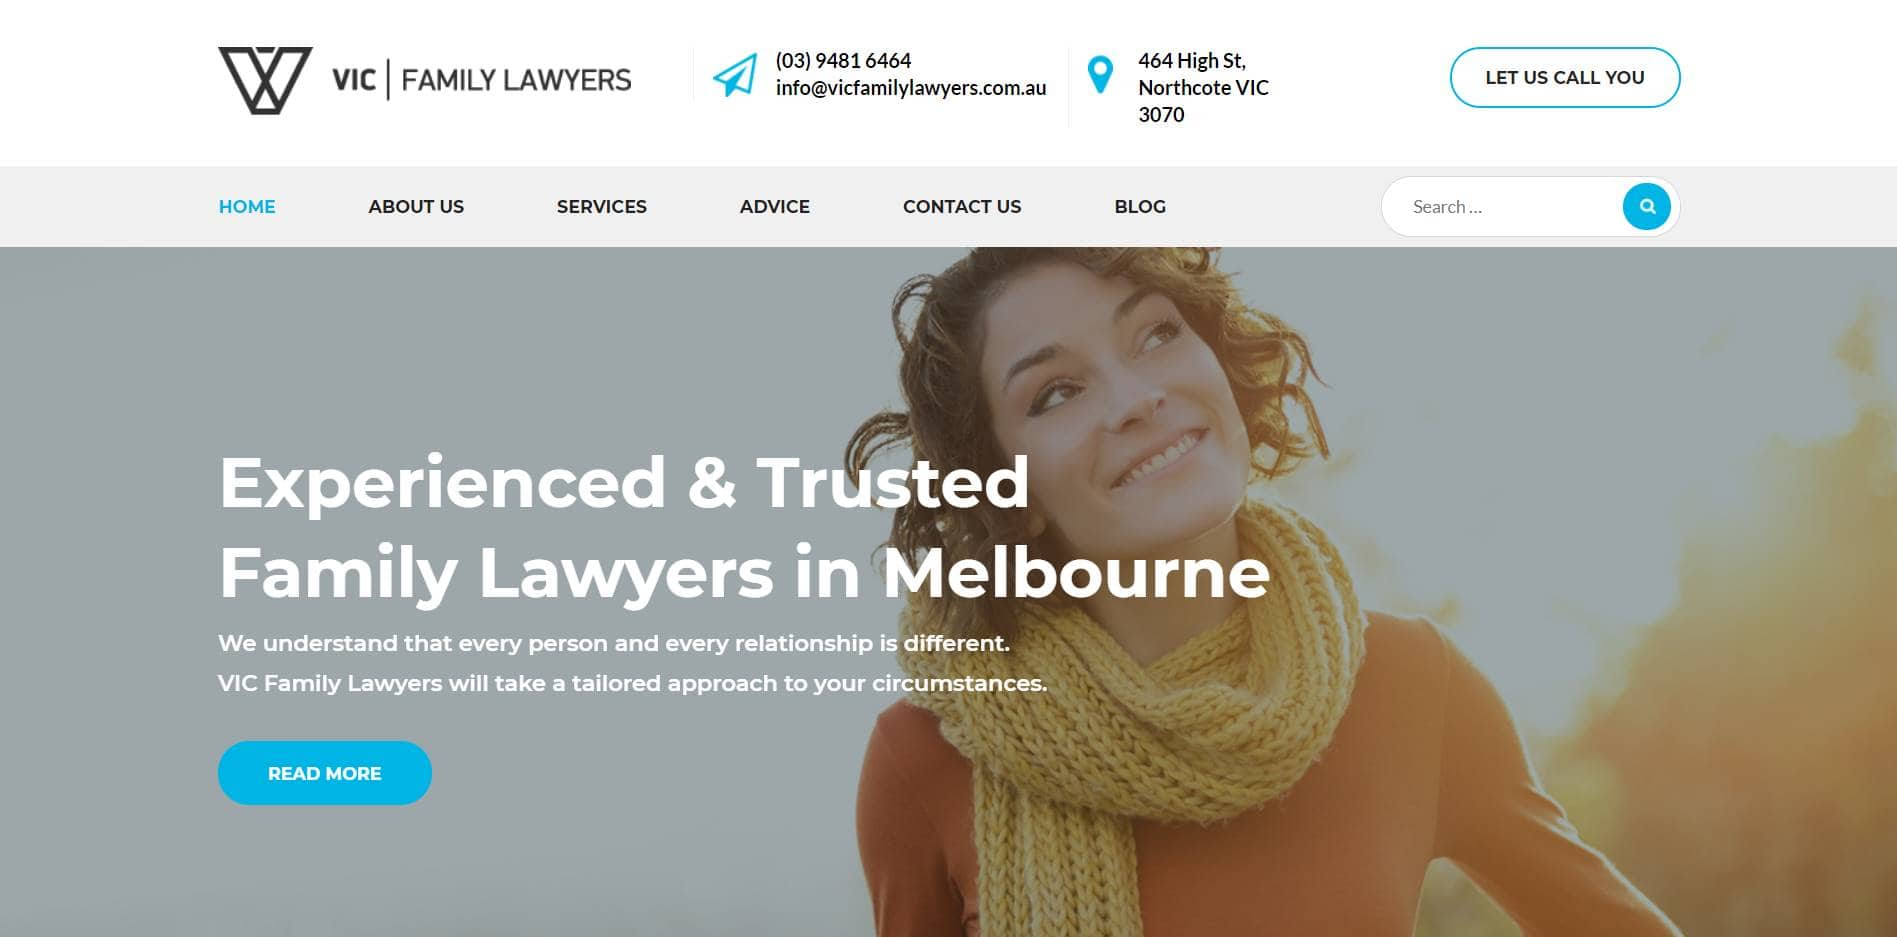 vic family lawyers